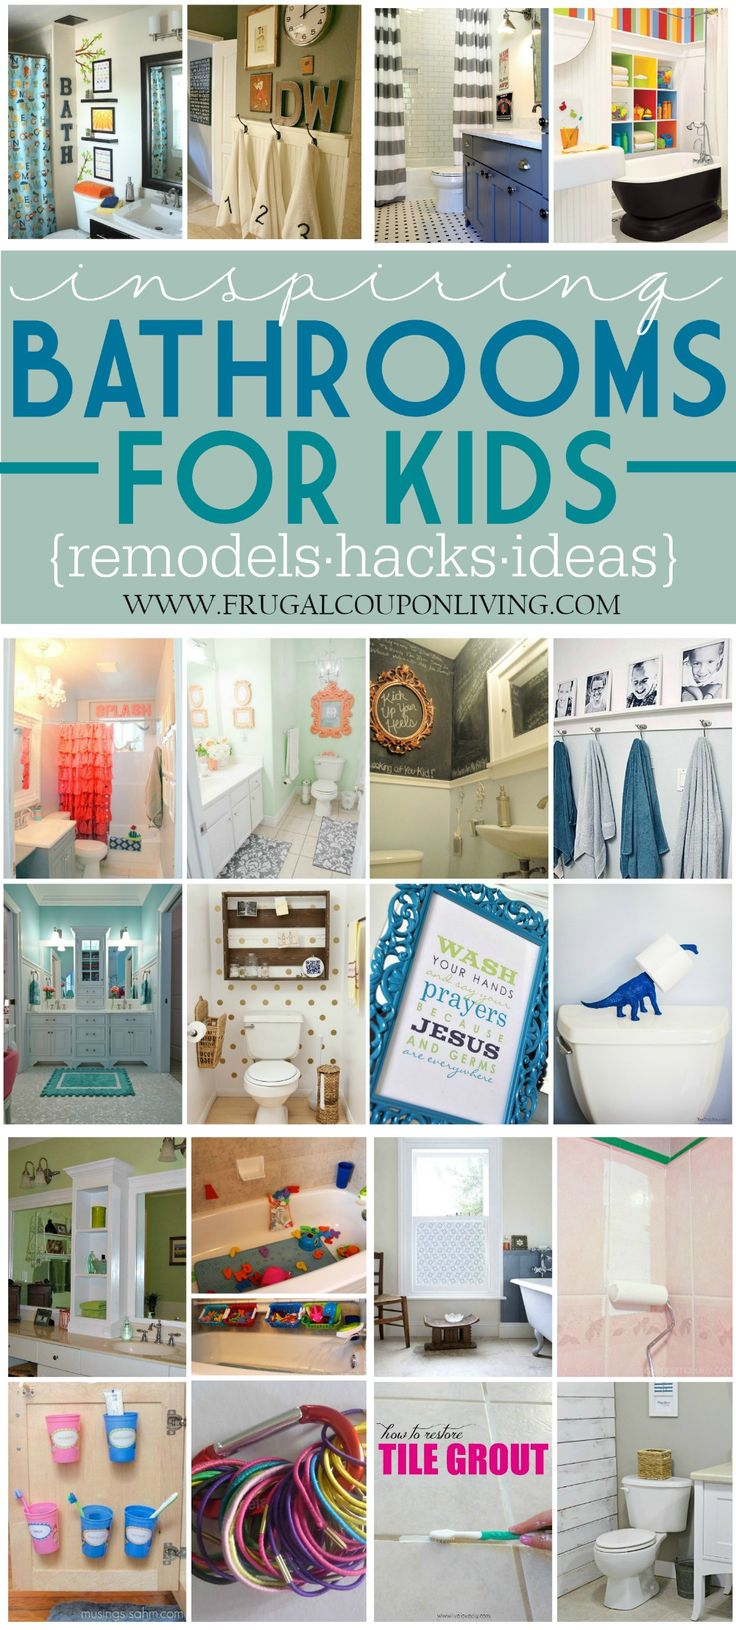 best 25 kid bathrooms ideas on pinterest kid bathroom decor baby bathroom and canvas pictures - Bathroom Decorating Ideas For Kids